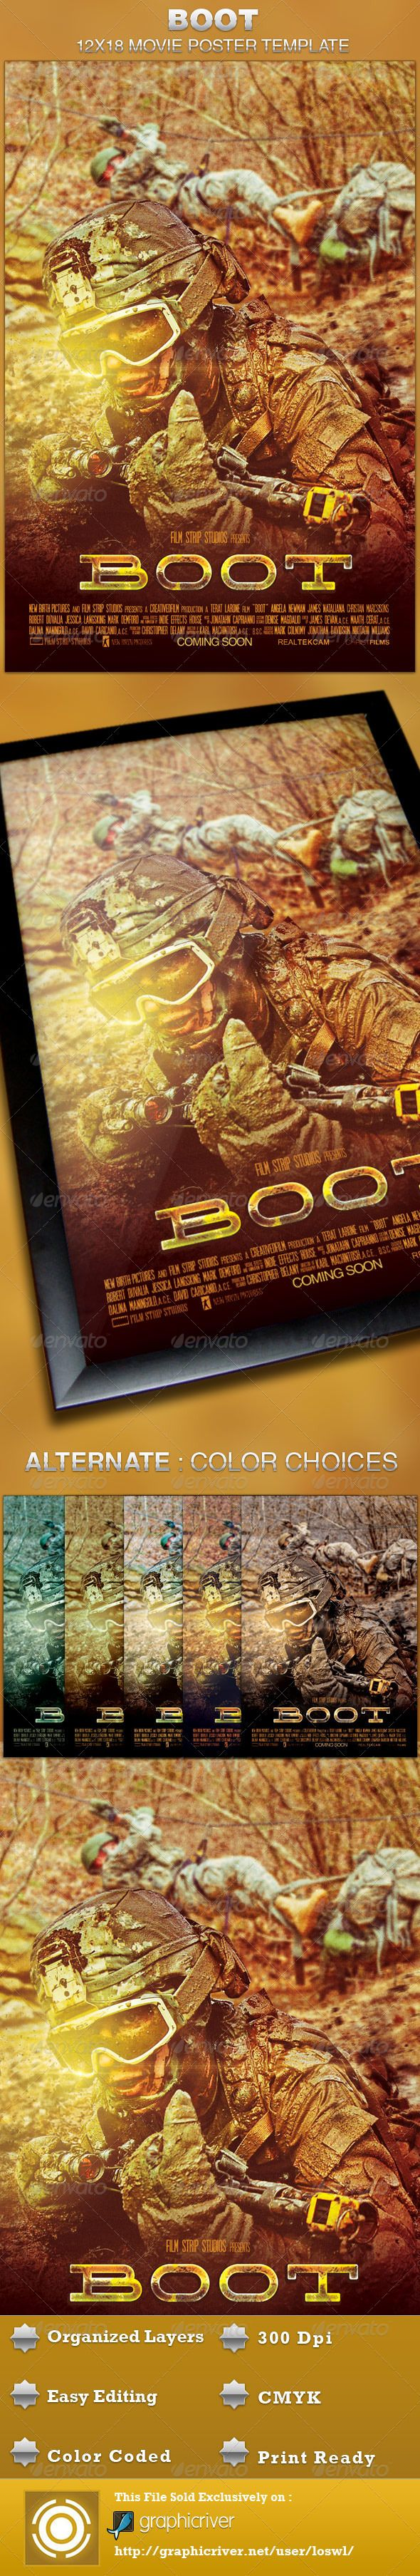 Boot Movie Poster Template — Photoshop PSD #3d #ground war • Available here → https://graphicriver.net/item/boot-movie-poster-template/4682748?ref=pxcr